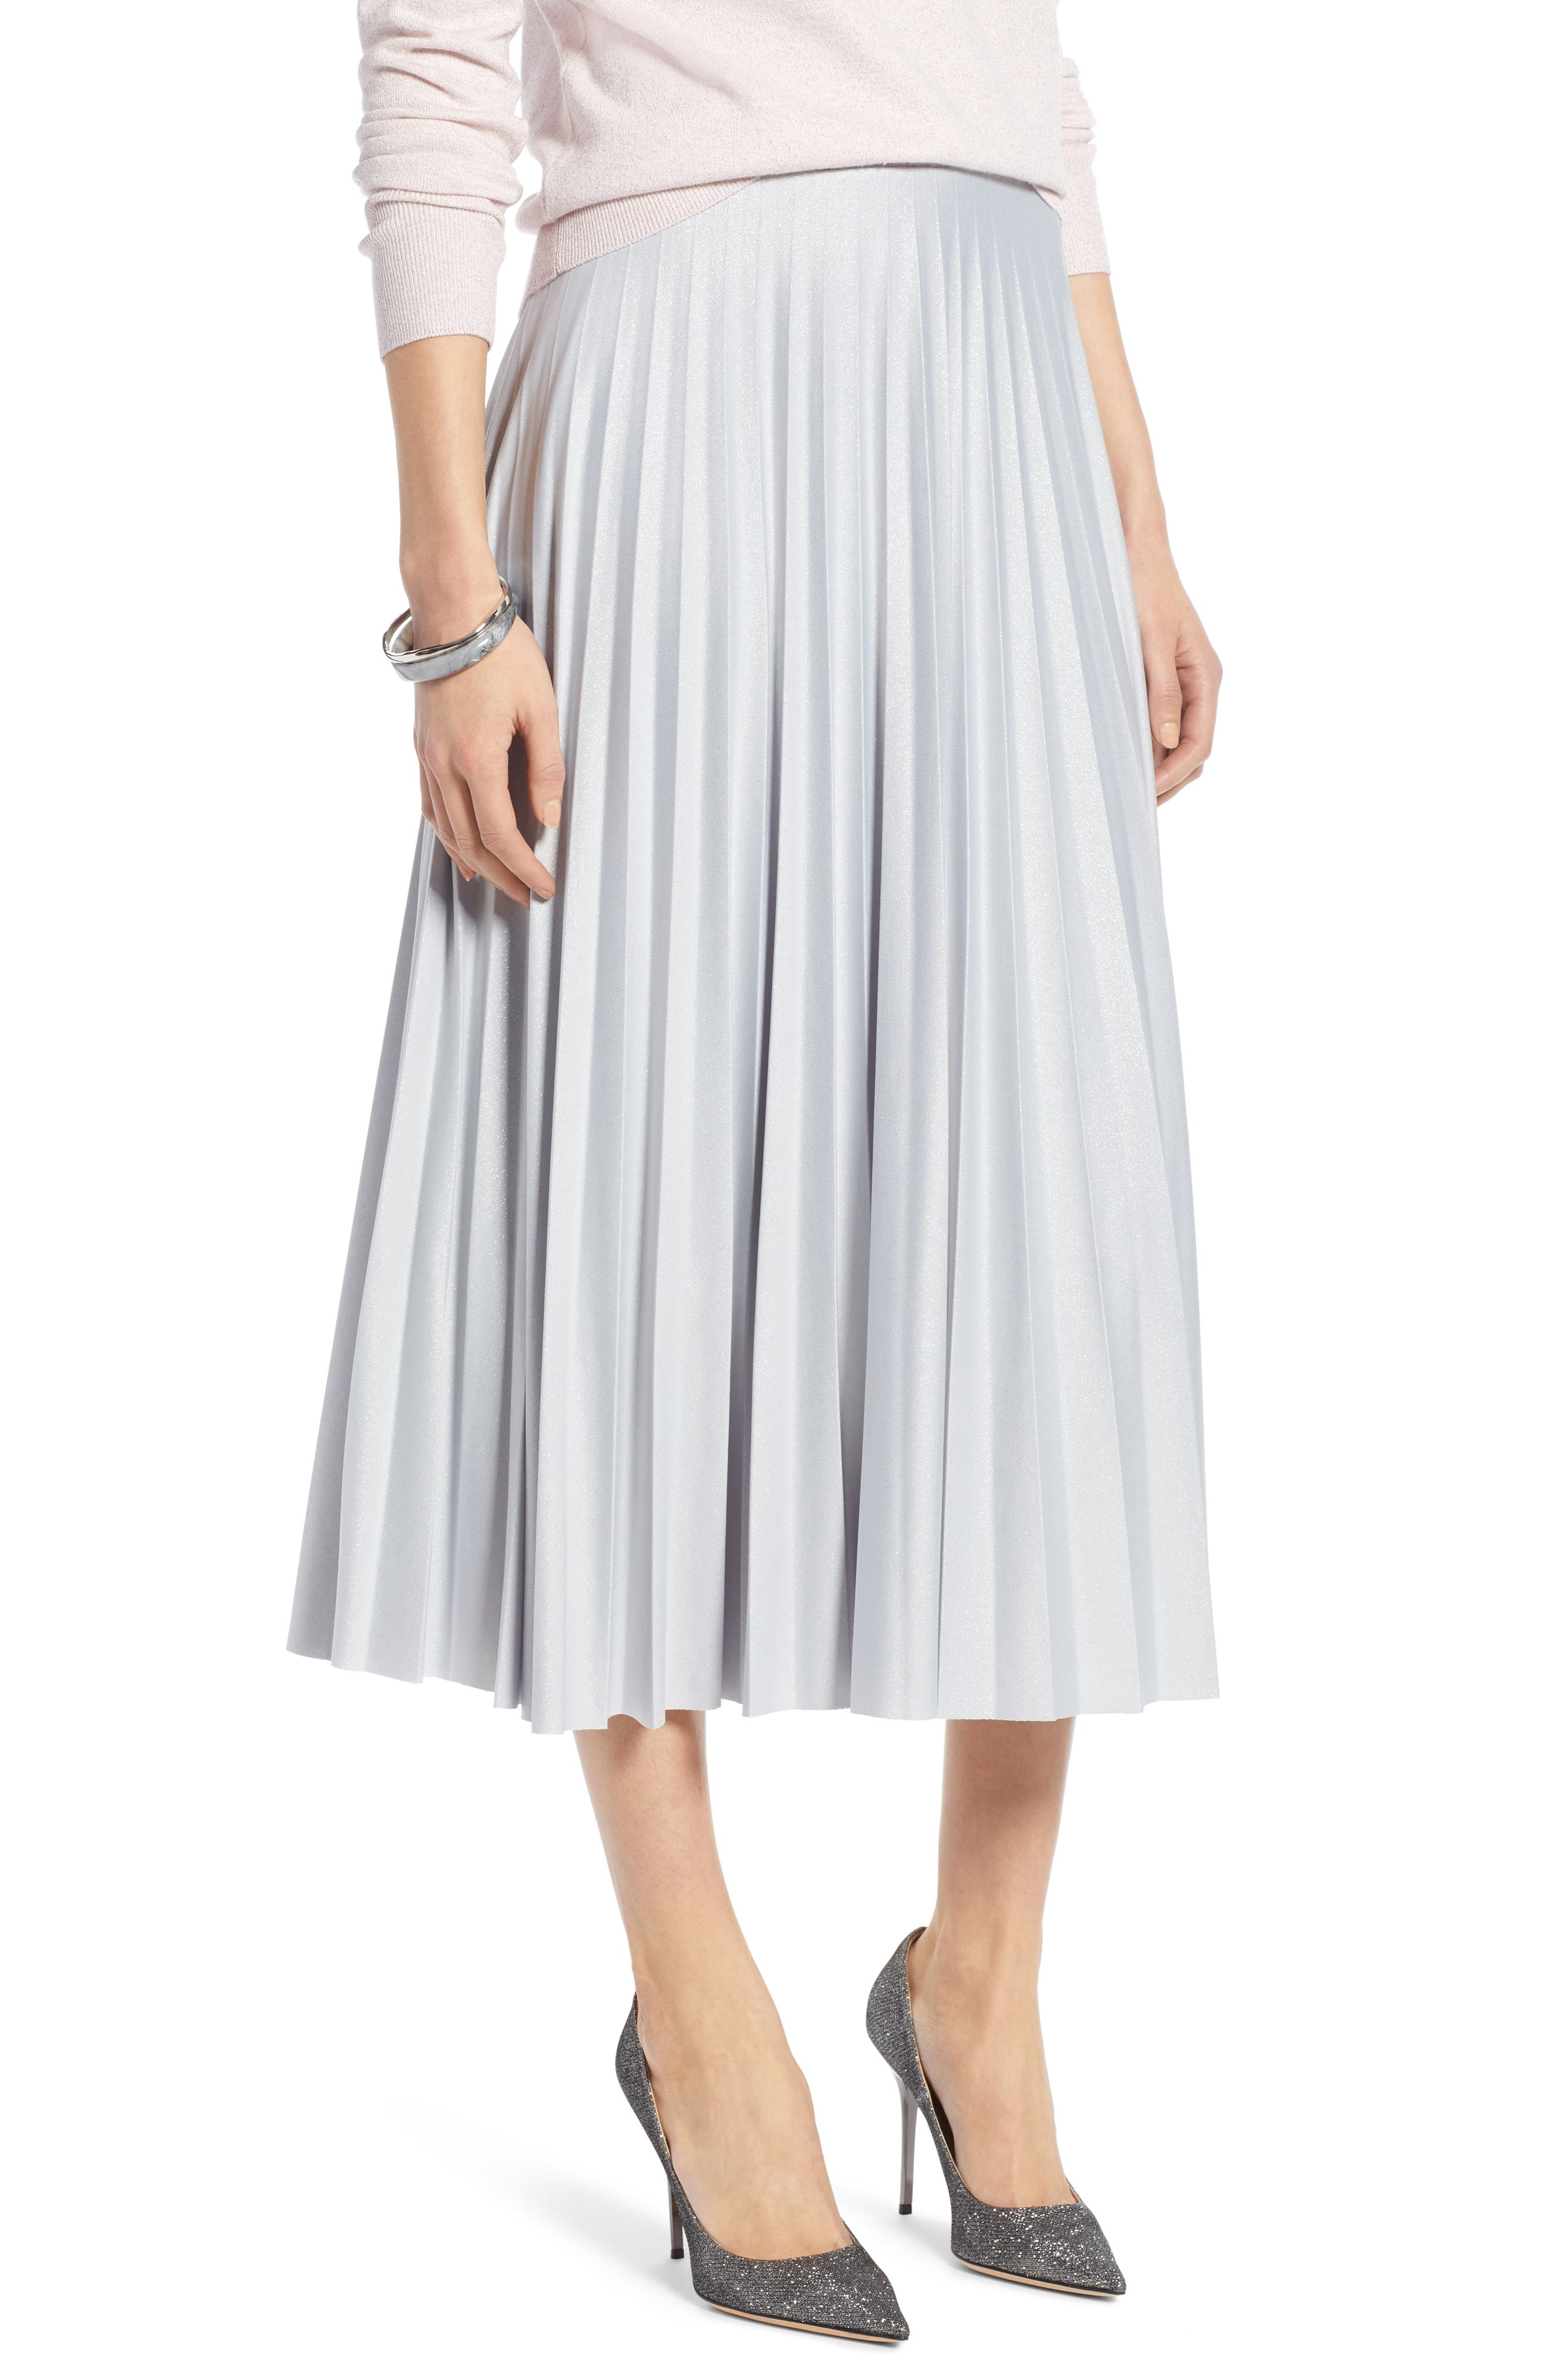 Metallic Pleat Midi Skirt,                             Main thumbnail 1, color,                             GREY- SILVER FOIL